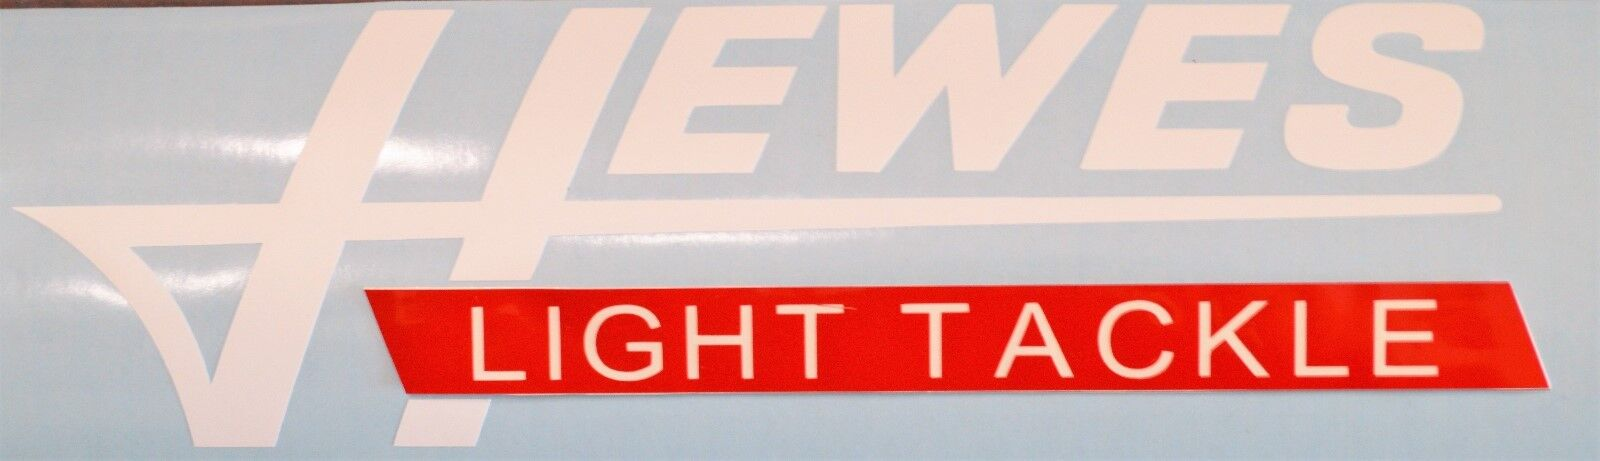 1 Hewes Light Tackle Vinyl Boat Decal White Red Sticker Logo Car Truck Window